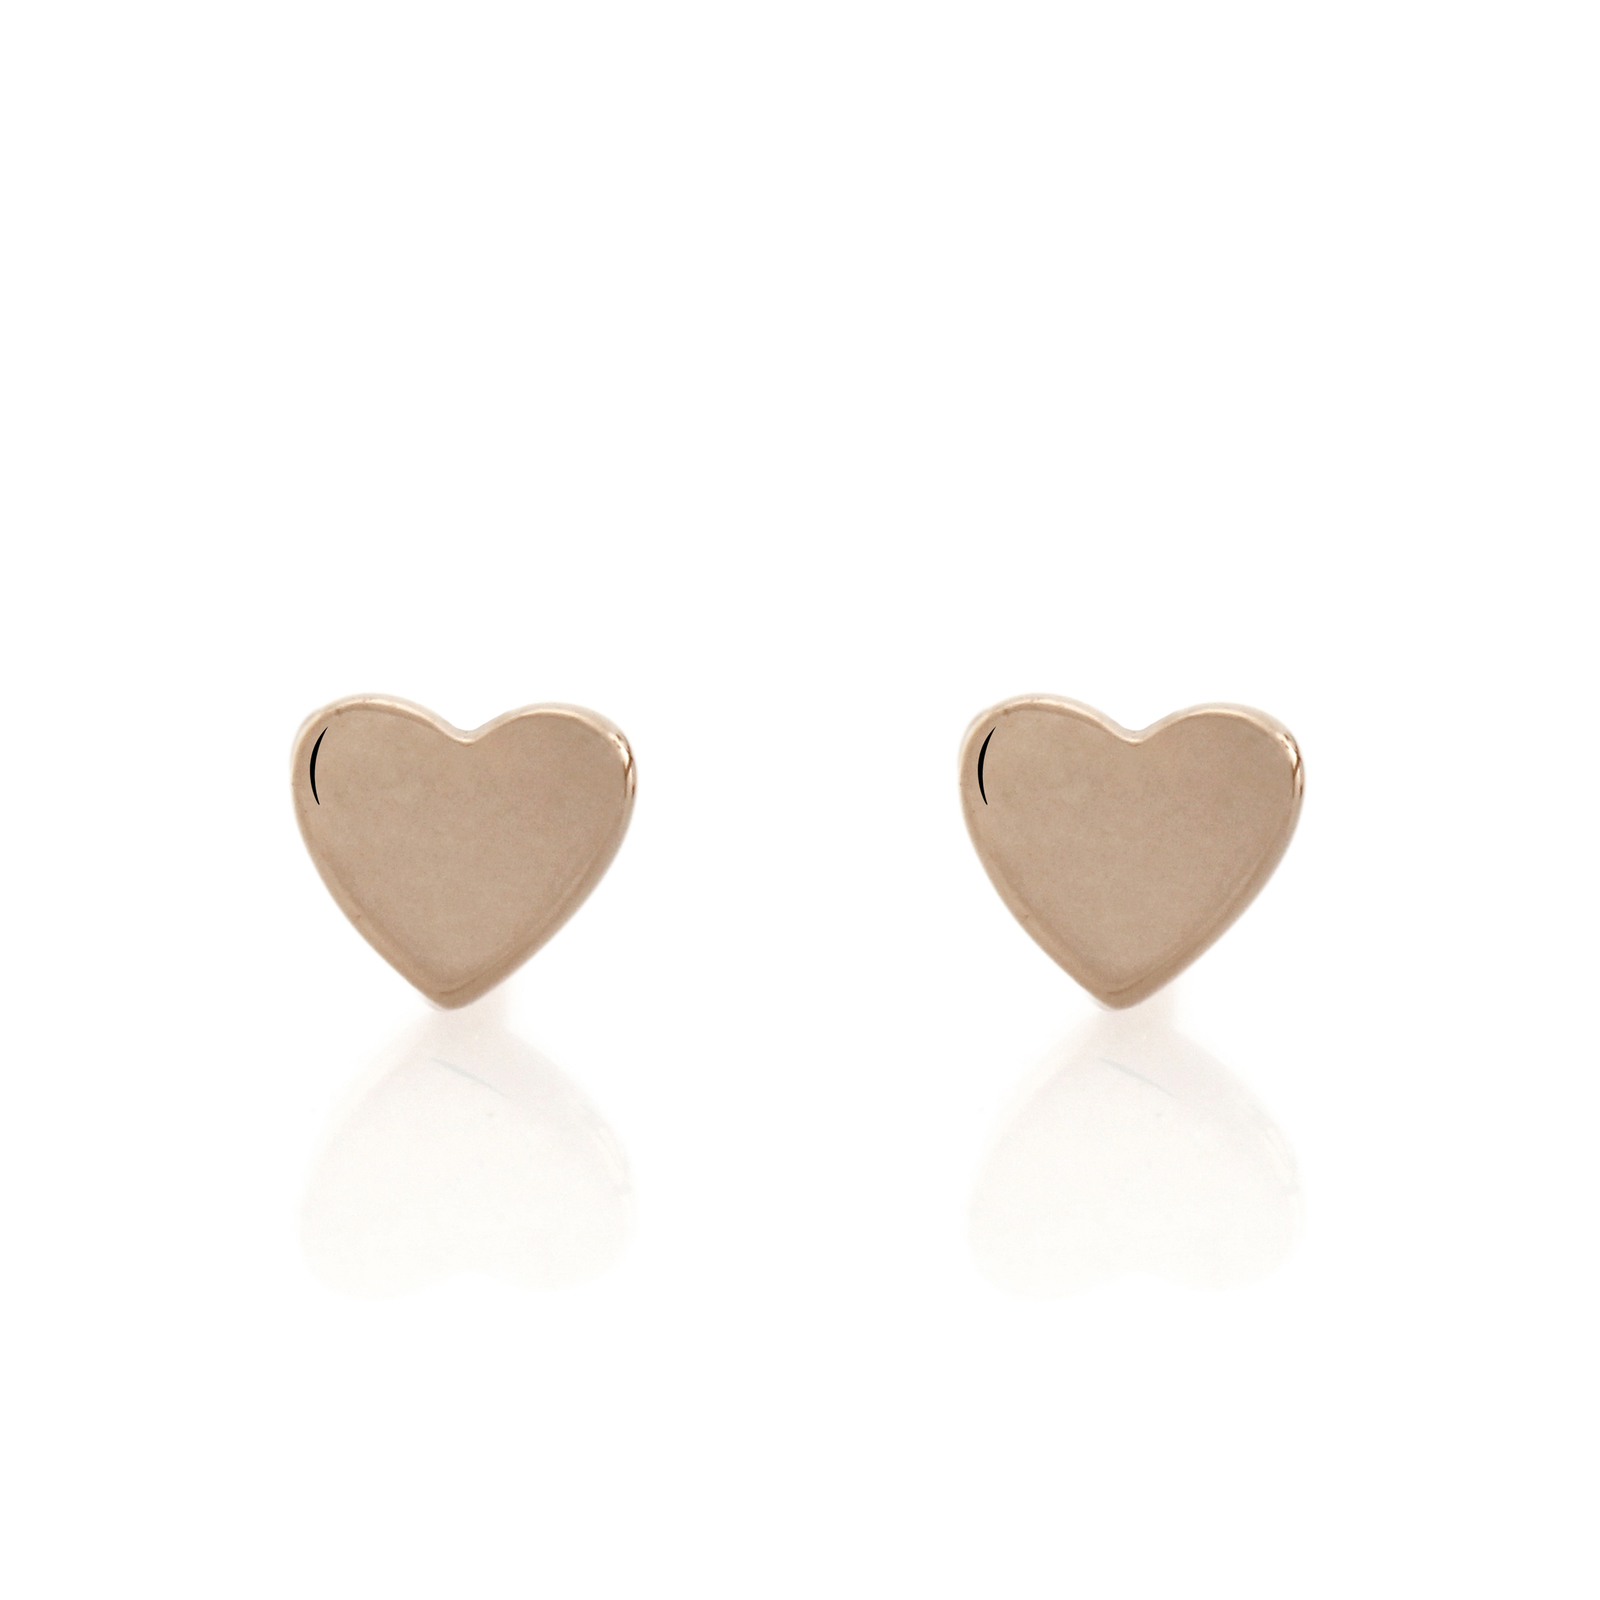 Bo + Bala: Love studs Rose Gold - Exclusive Style image